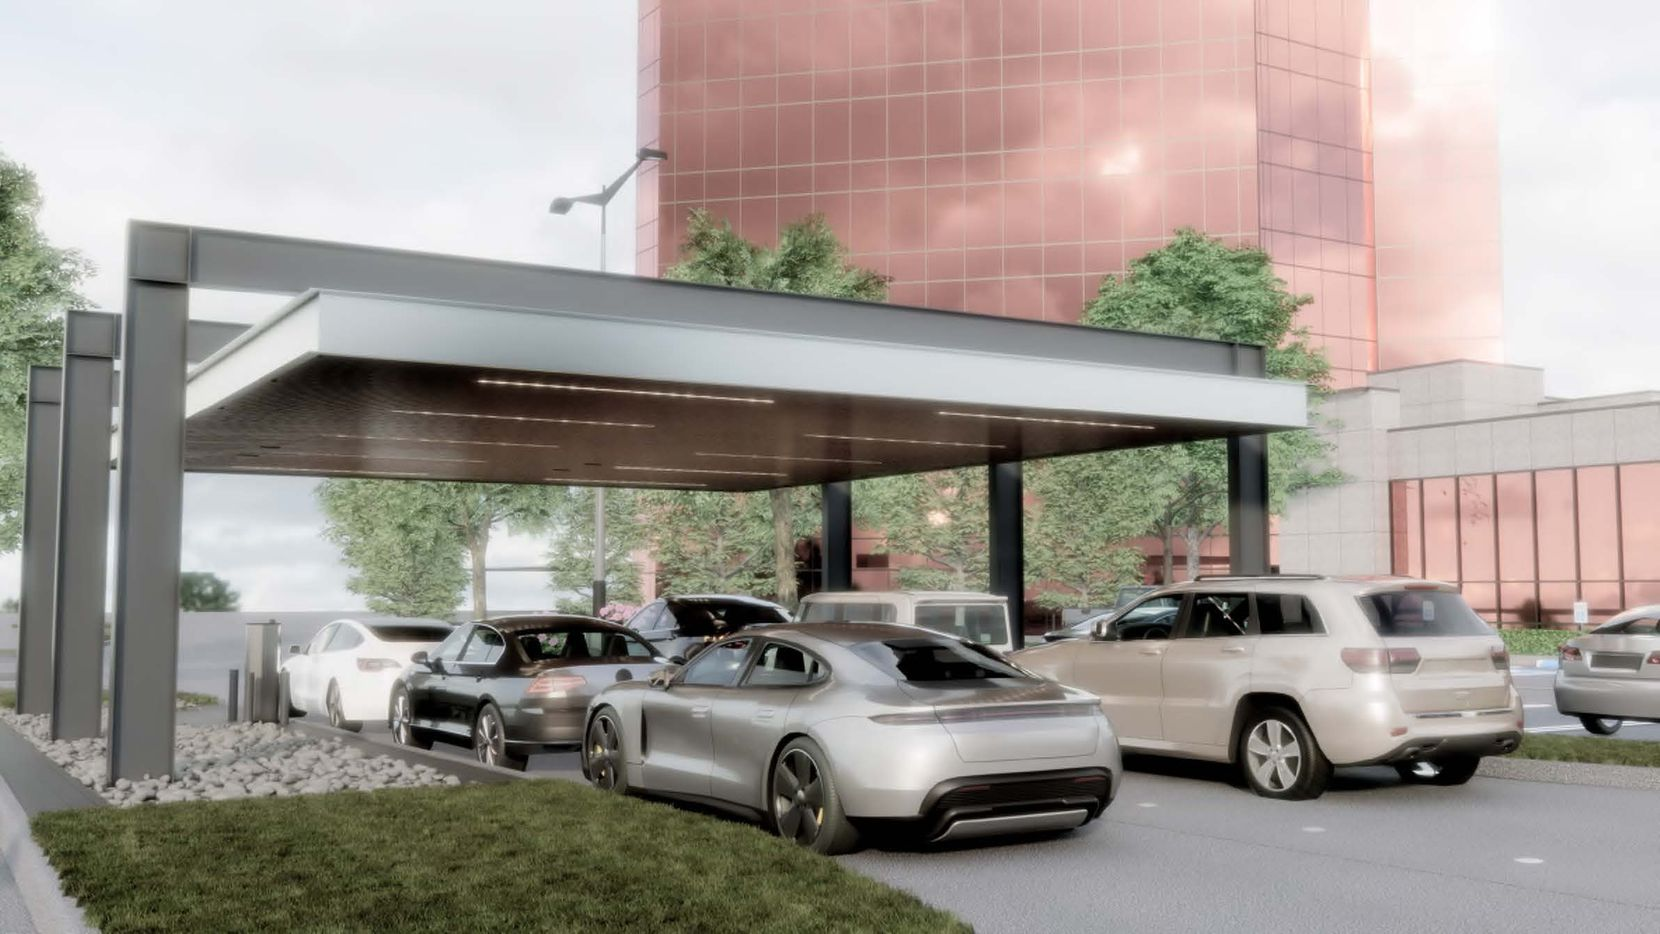 A render shows the new drive-in banking facilities, which will be relocated to the northern part of the property for easier access.